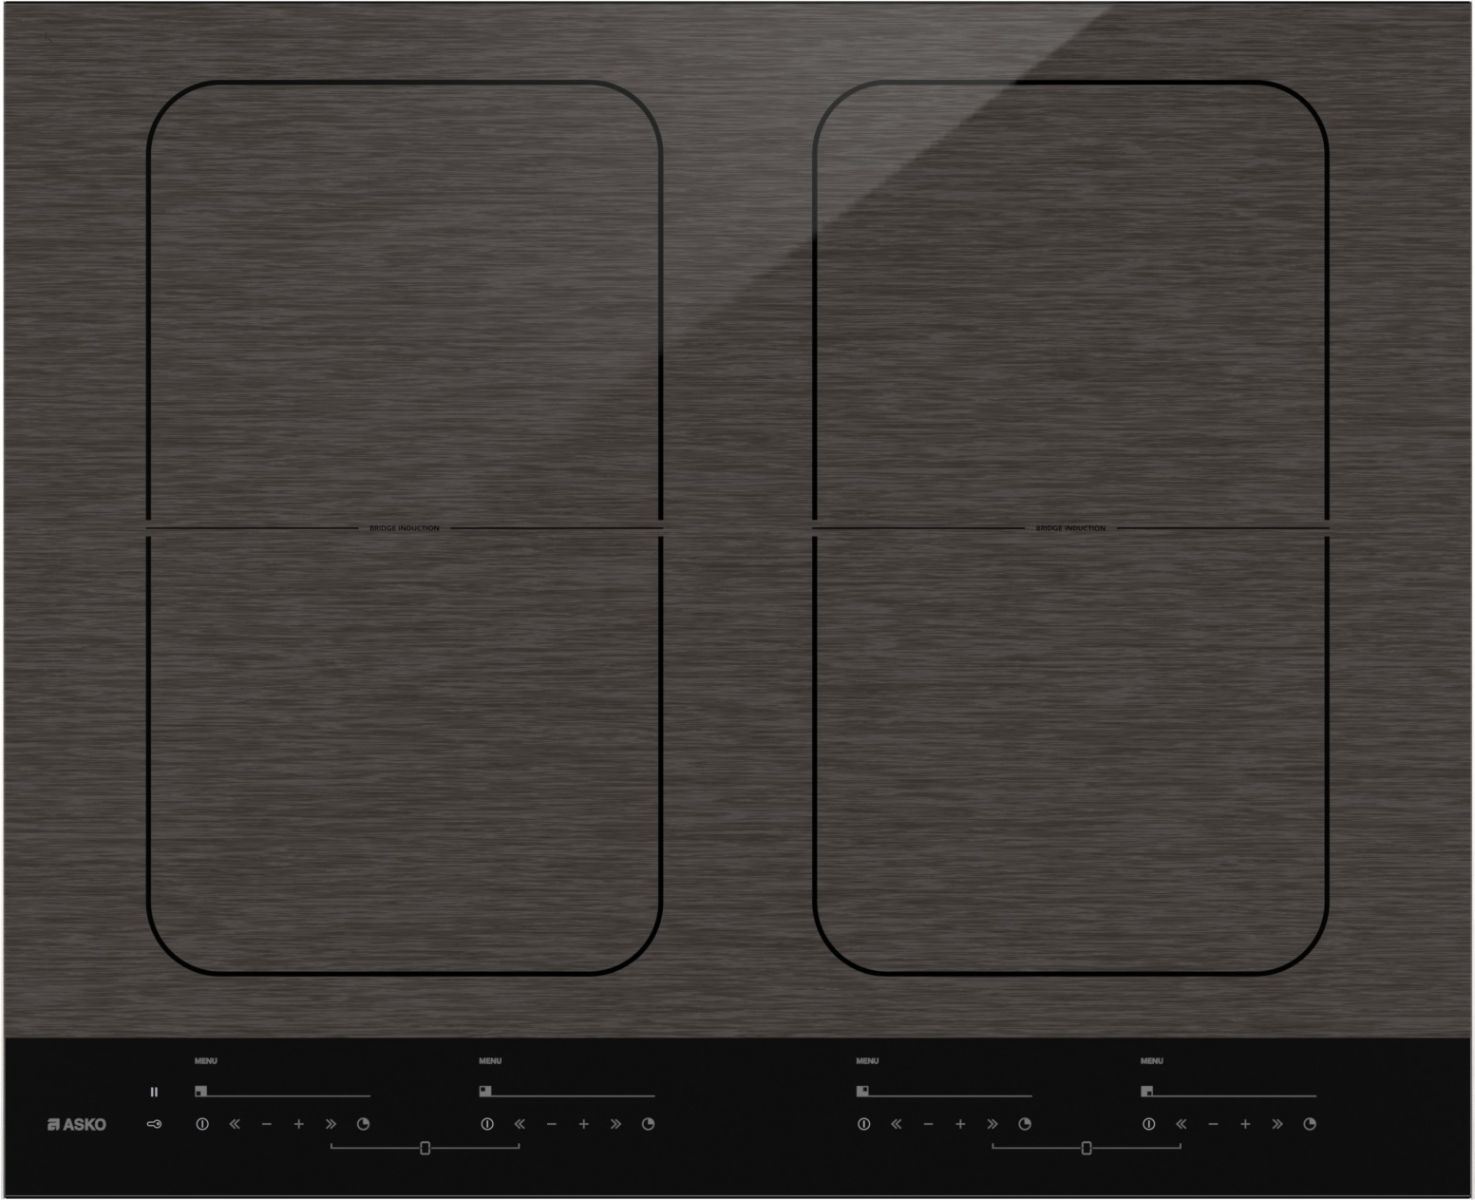 Exceptional Asko 60cm Induction Cooktop With Matt Black Finish Which Is Slip Resistant  And Mark